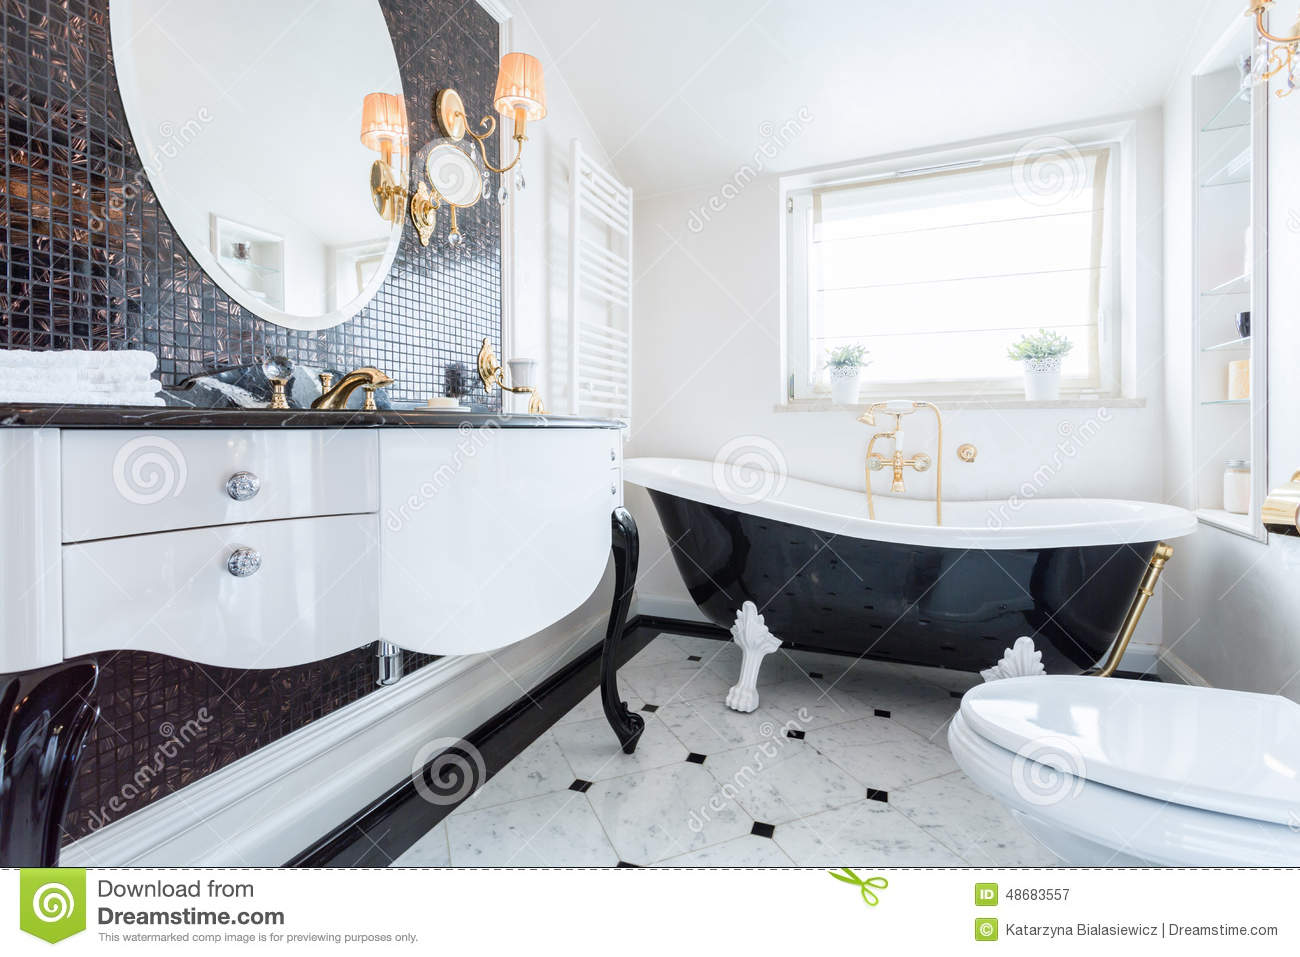 black and white baroque bathroom stock photo image 48683557. Black Bedroom Furniture Sets. Home Design Ideas